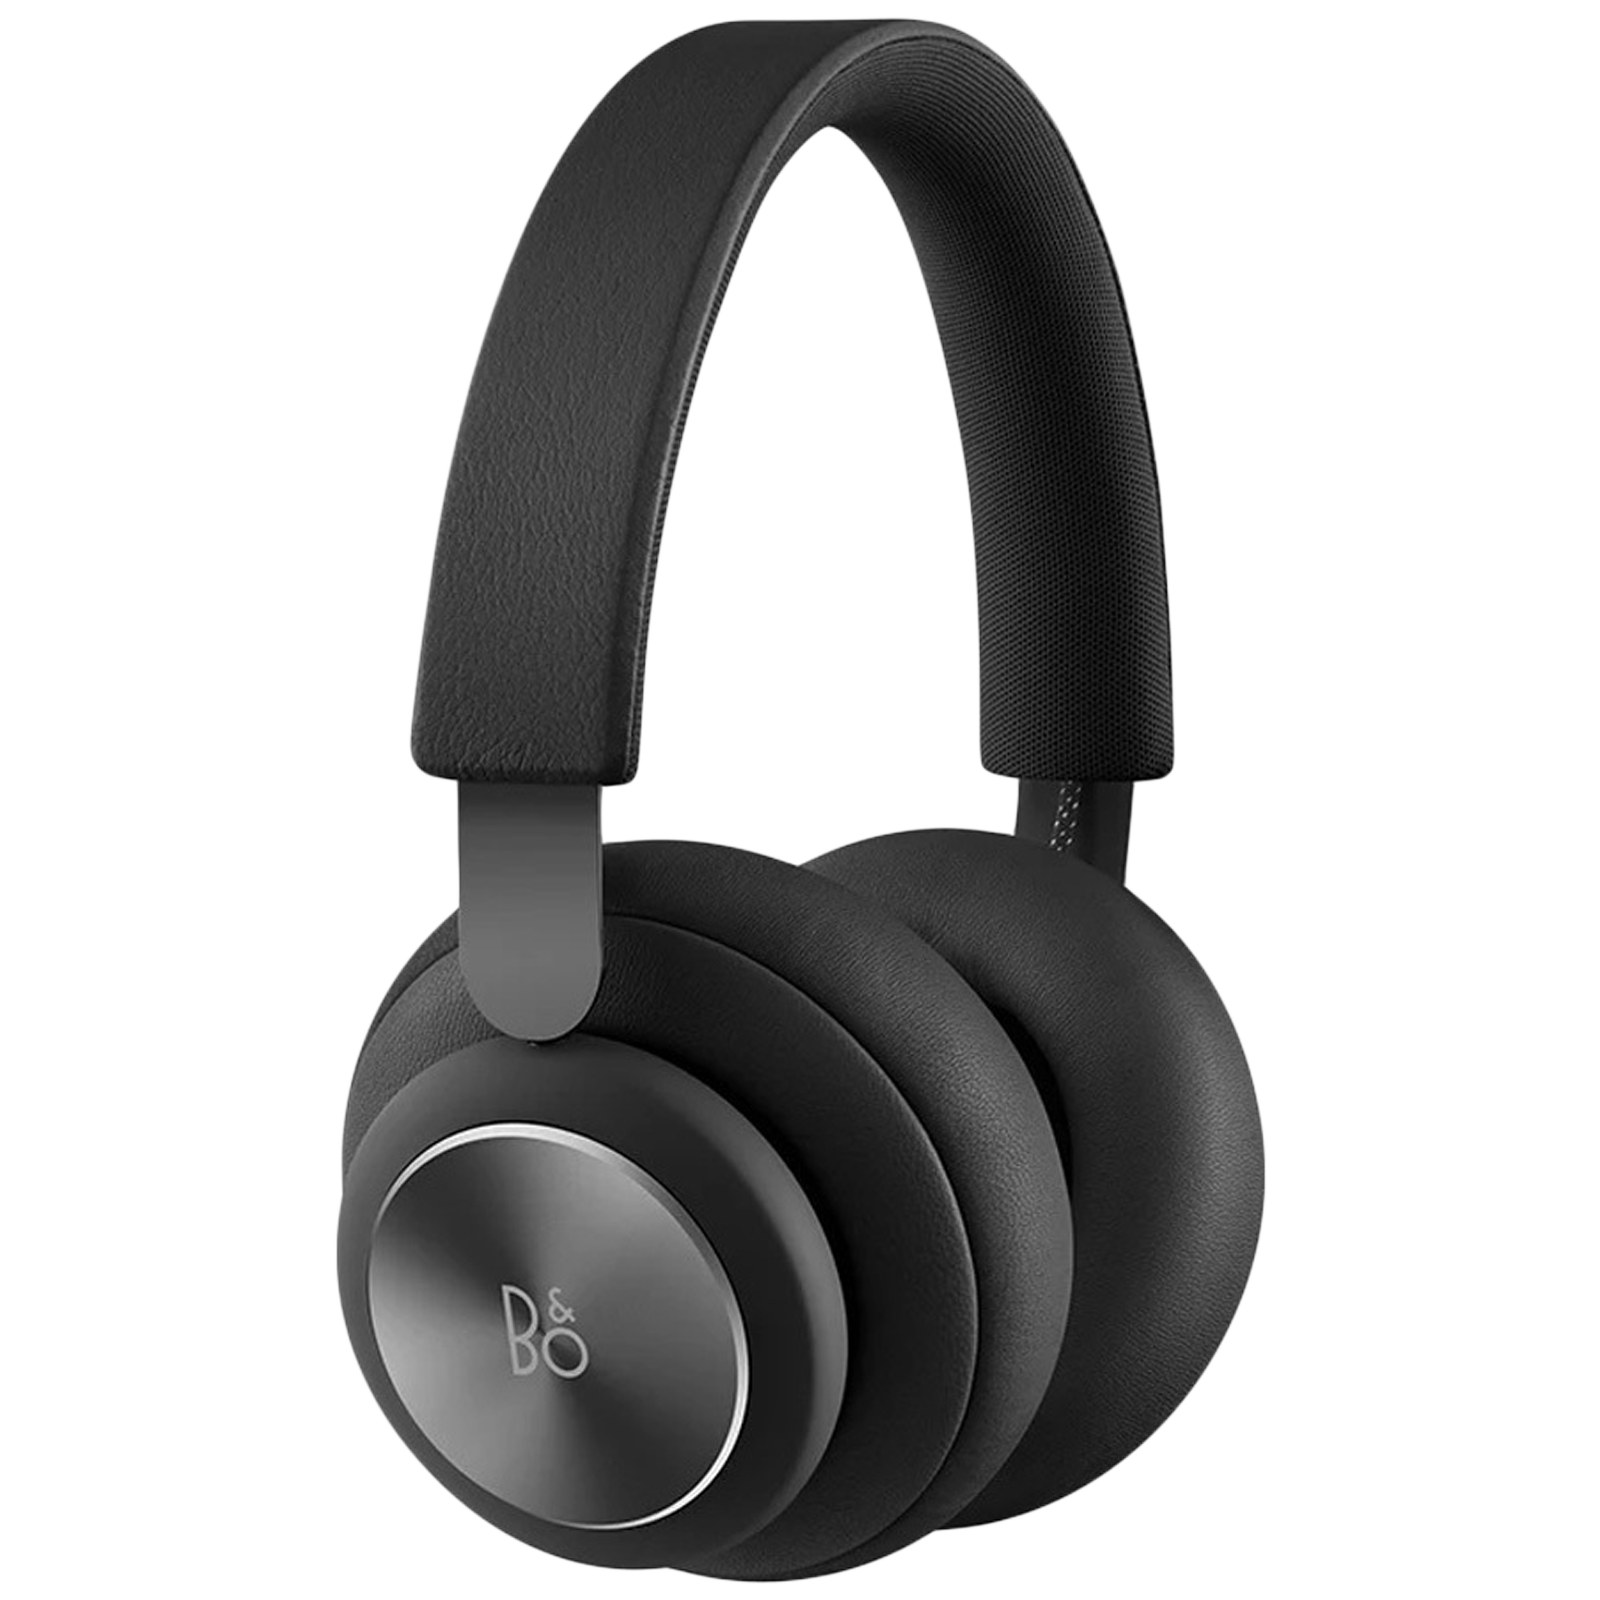 Bang & Olufsen Beoplay H4 2nd Gen Over-Ear Passive Noise Cancellation Wireless Headphone with Mic (Bluetooth 4.2, Google Assistant Support, BO-BPH4-MTBLK, Matte Black)_1